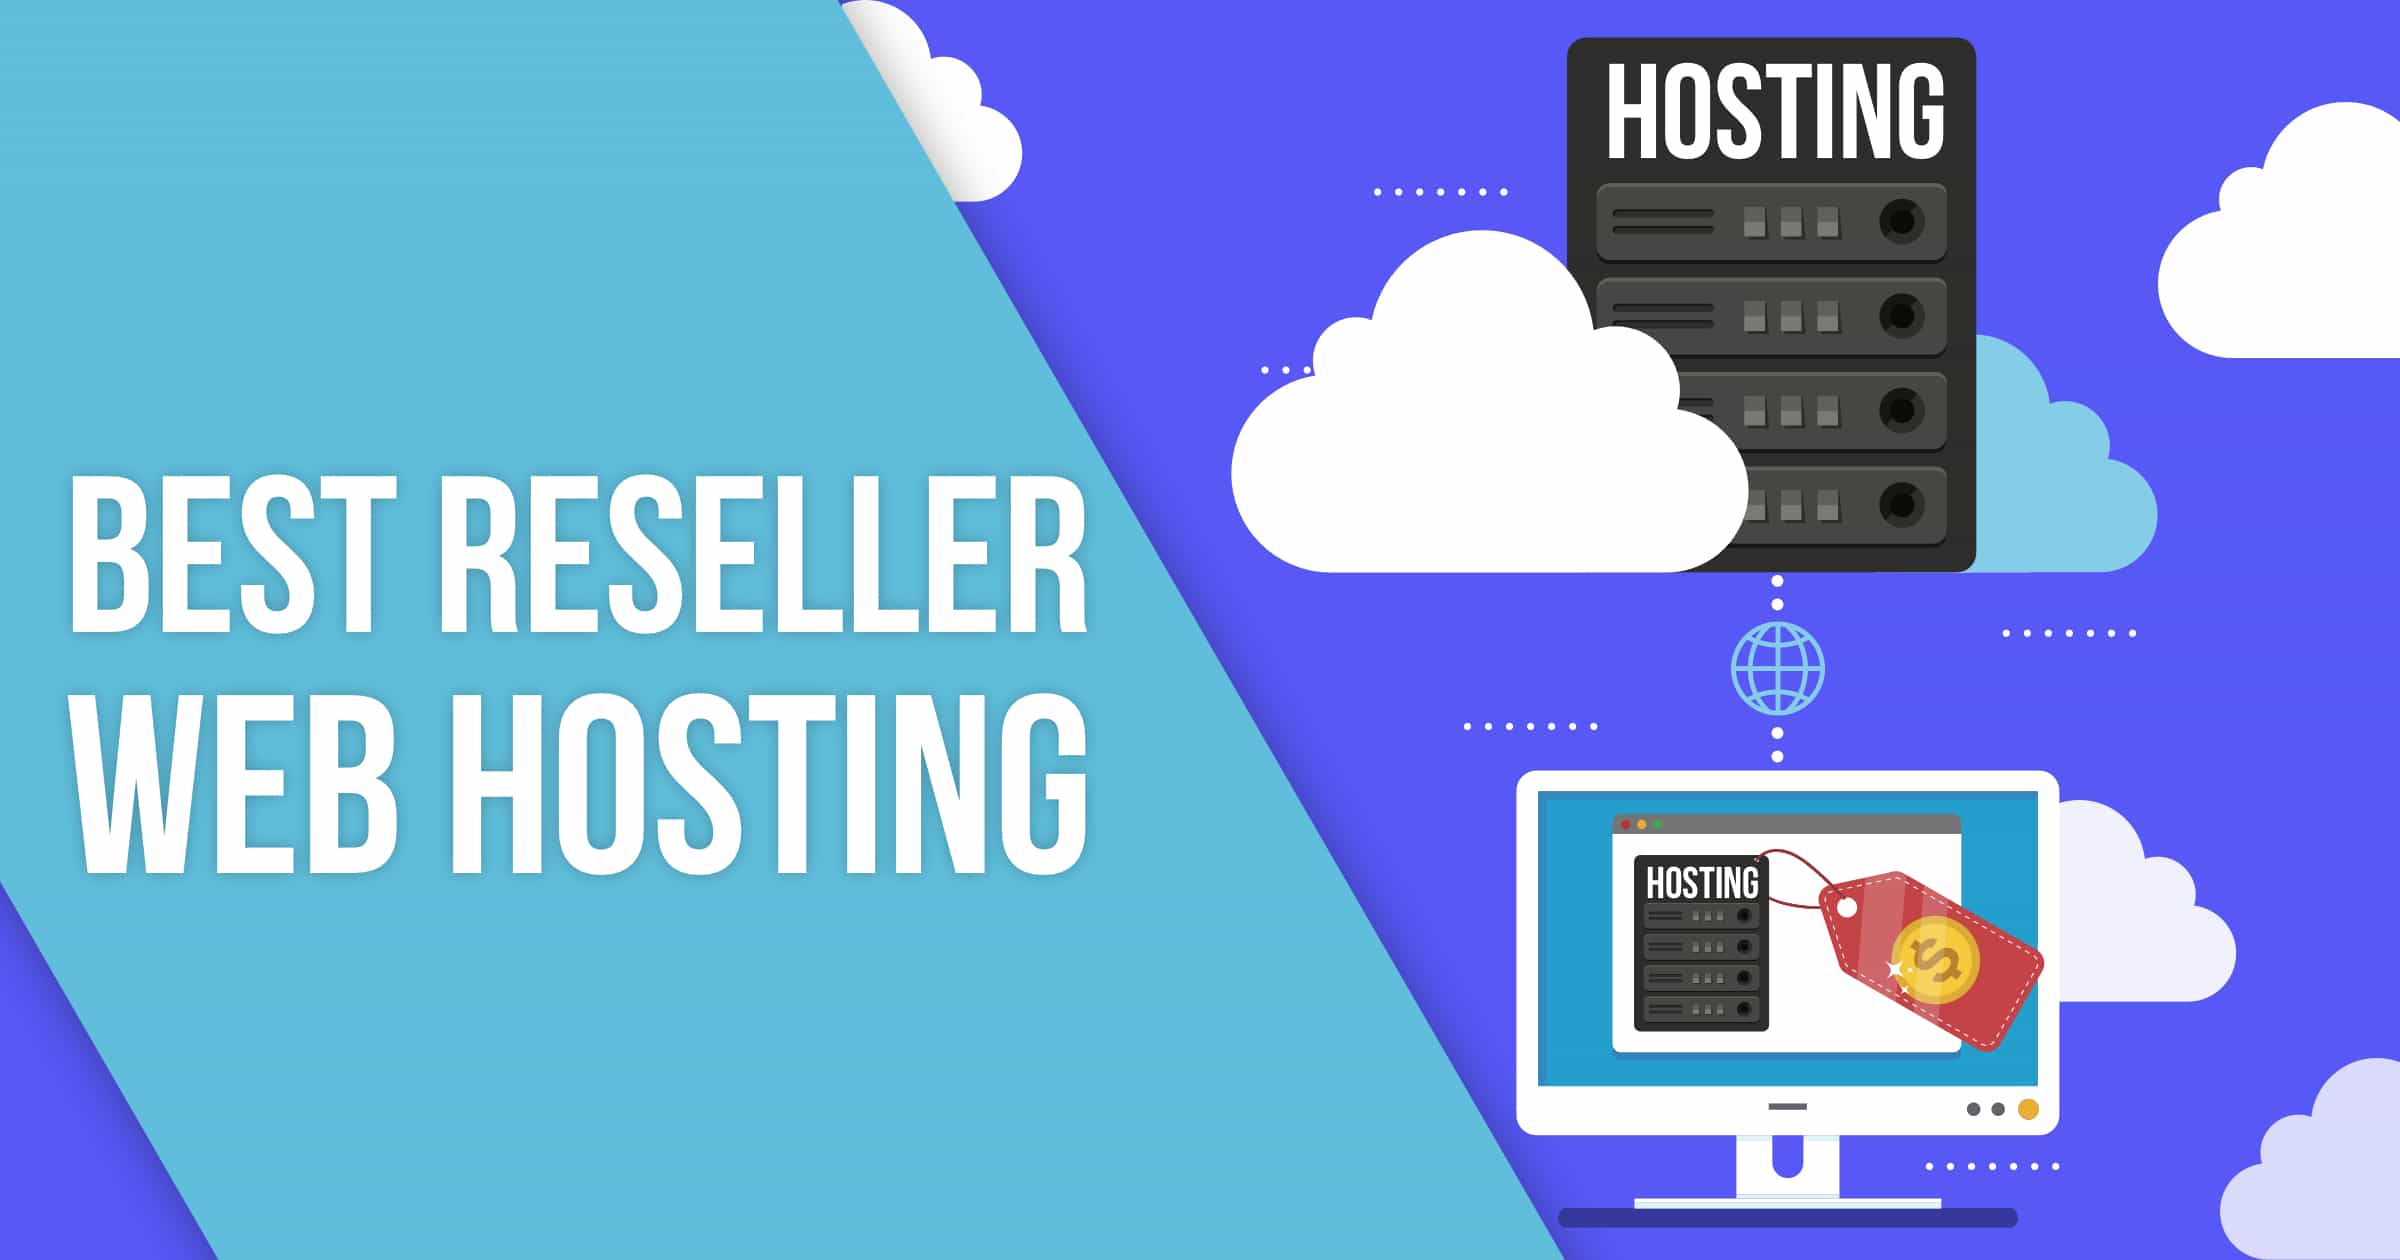 5 Top Reseller Web Hosting Providers Who Give You More Value (2020)